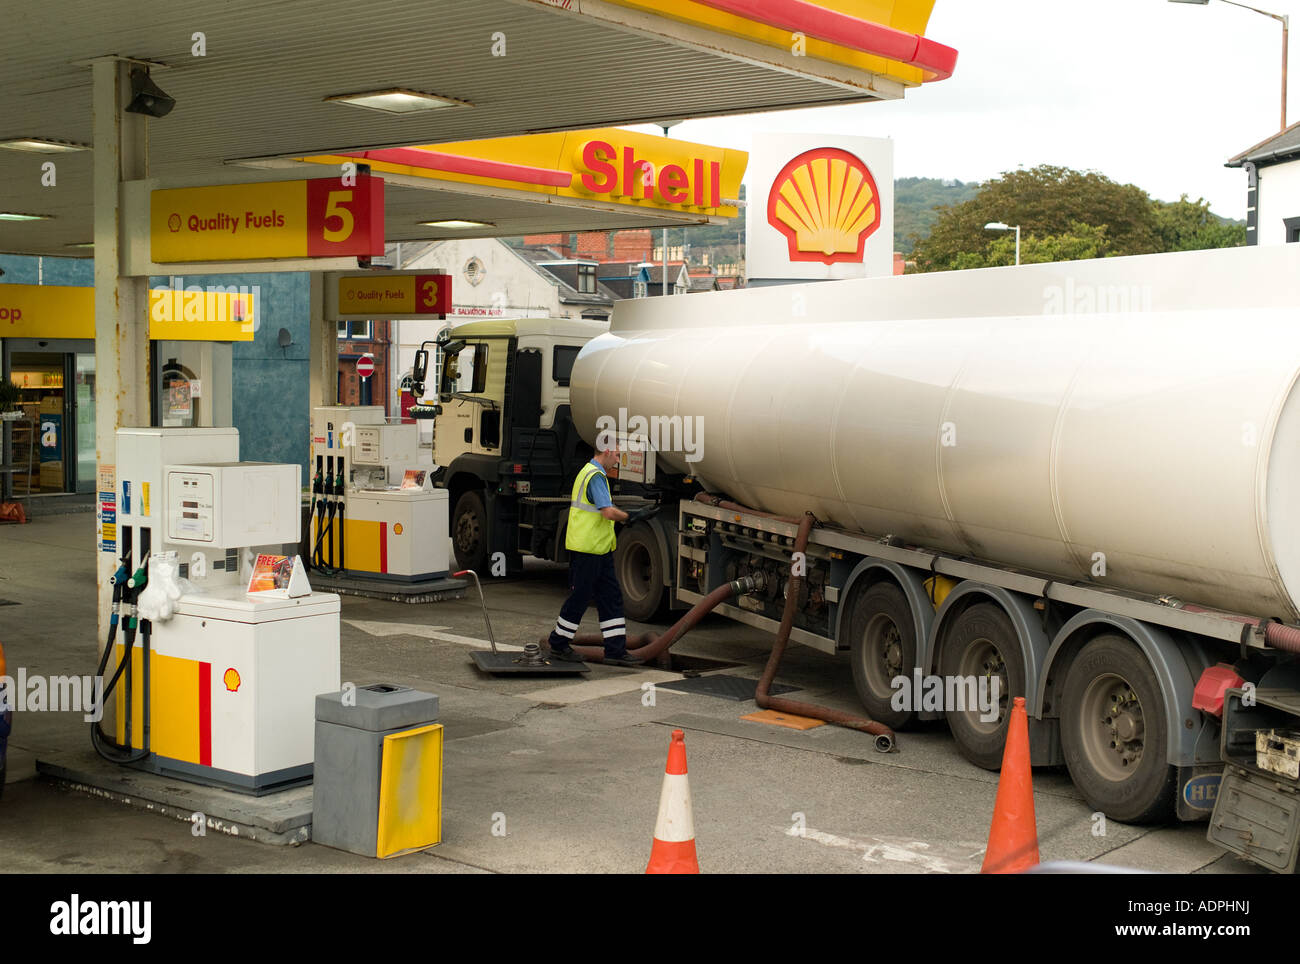 tanker lorry truck delivering bulk petrol and diesel fuel to refuel stock photo 13471949 alamy. Black Bedroom Furniture Sets. Home Design Ideas